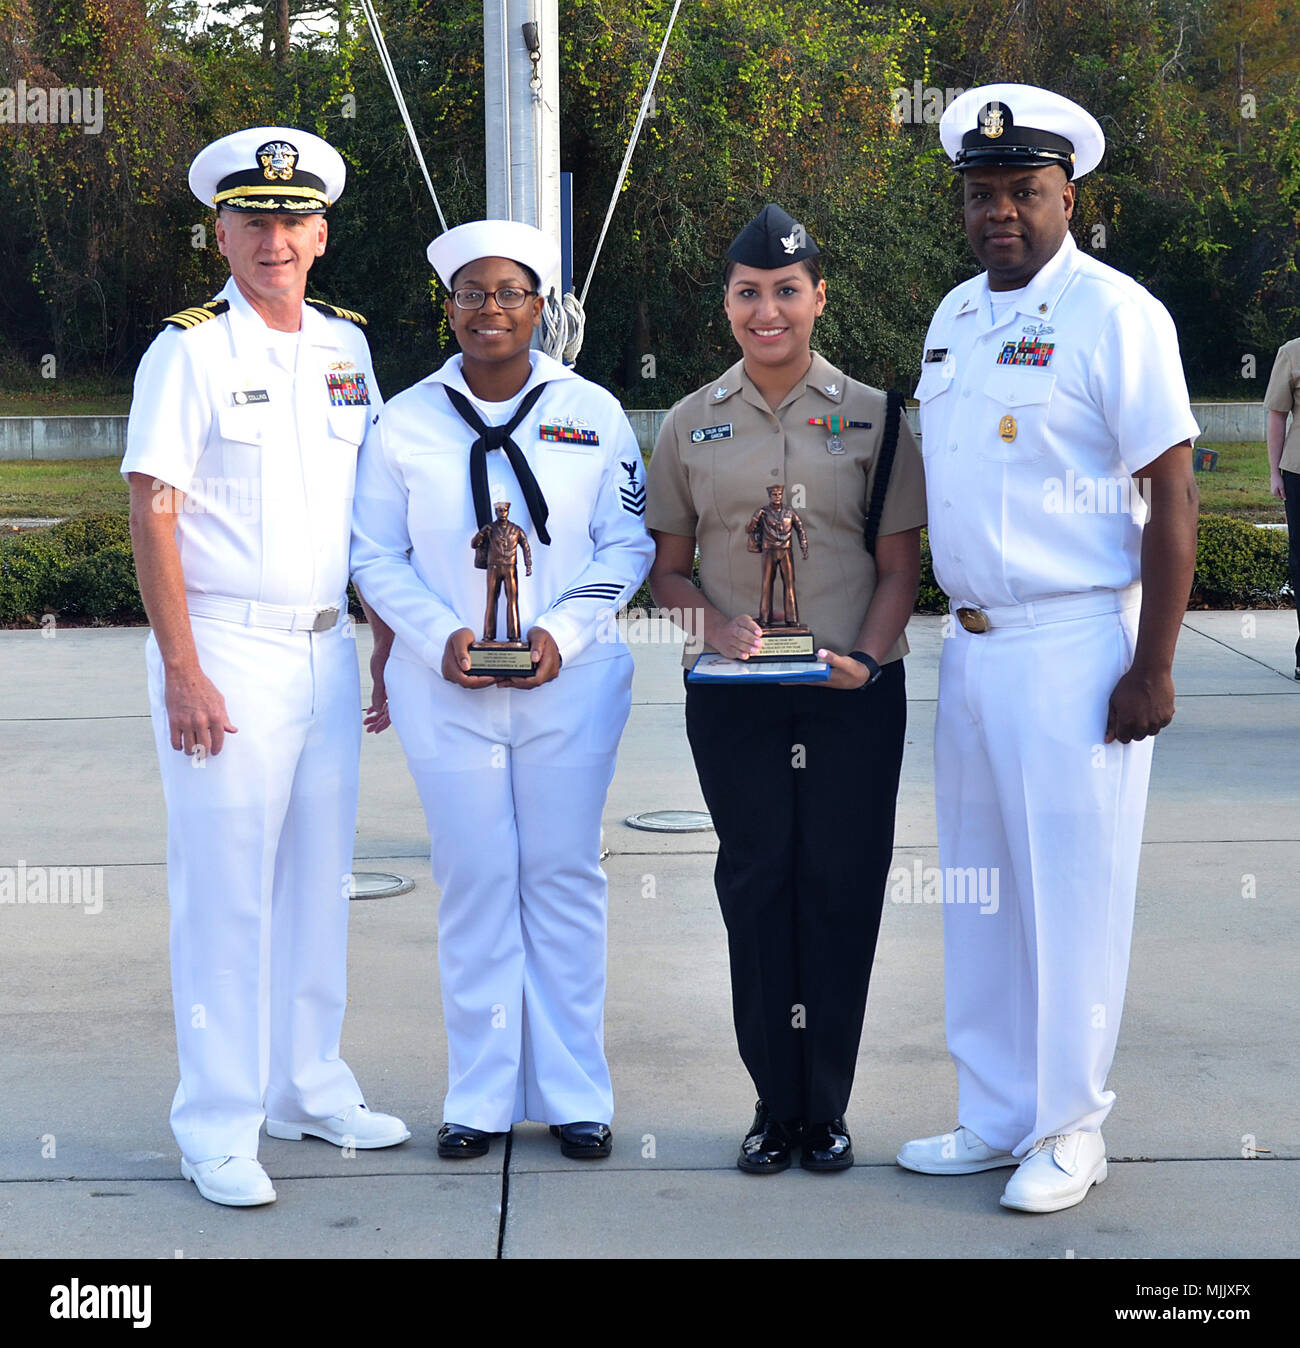 JACKSONVILLE, Fla. (Dec. 1, 2017) – Two Naval Hospital Jacksonville sailors have been selected by Navy Medicine East as Regional Sailors of the Year. HM1 Alexanderia Artis (center, left) is the NME Senior Sailor of the Year and HN Karina GarciaAlanis (center, right) is the NME Blue Jacket Sailor of the Year. Sailors from across NME's 21 commands in the eastern hemisphere competed. Also pictured are Capt. David Collins (left), Naval Hospital Jacksonville commanding officer, and Naval Hospital Jacksonville Command Master Chief Lewis Jackson. (U.S. Navy photo by Yan Kennon, Naval Hospital Jackson Stock Photo